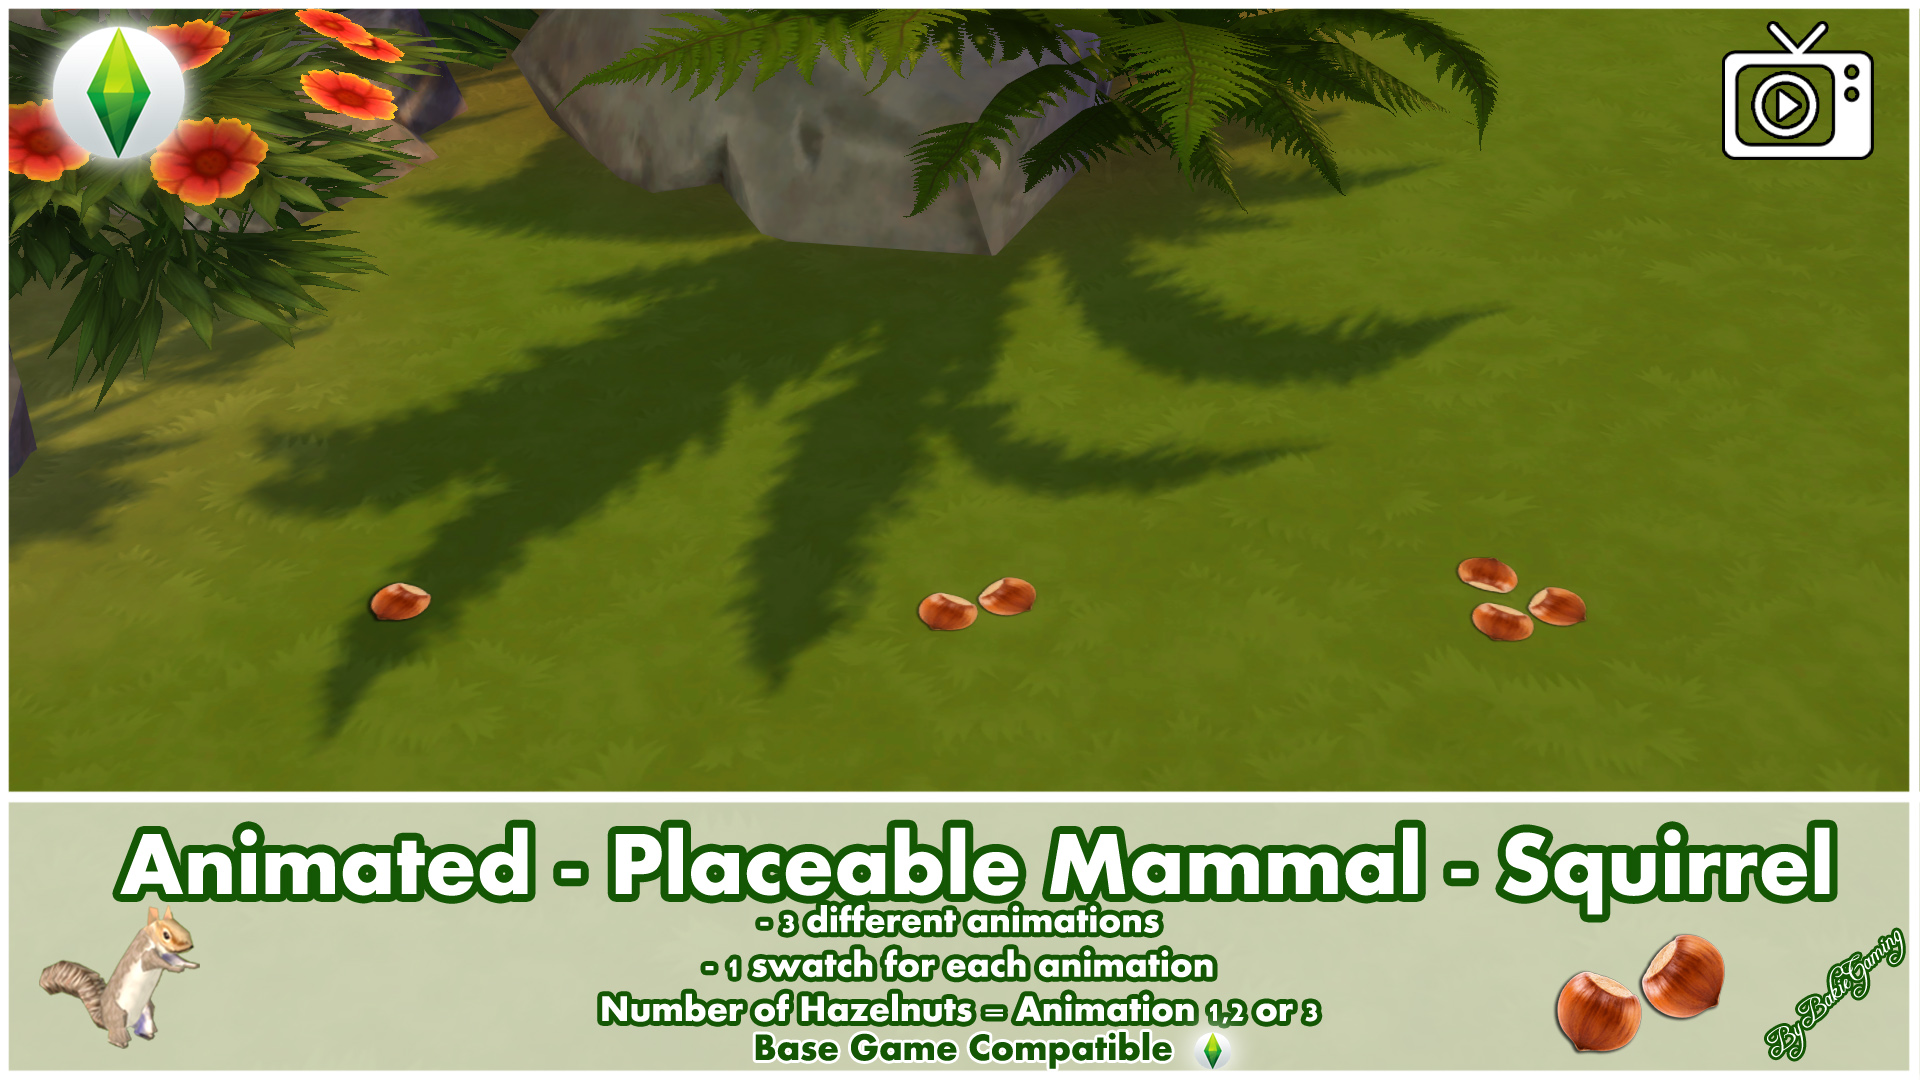 Mod The Sims - Animated - Placeable Mammal - Squirrel